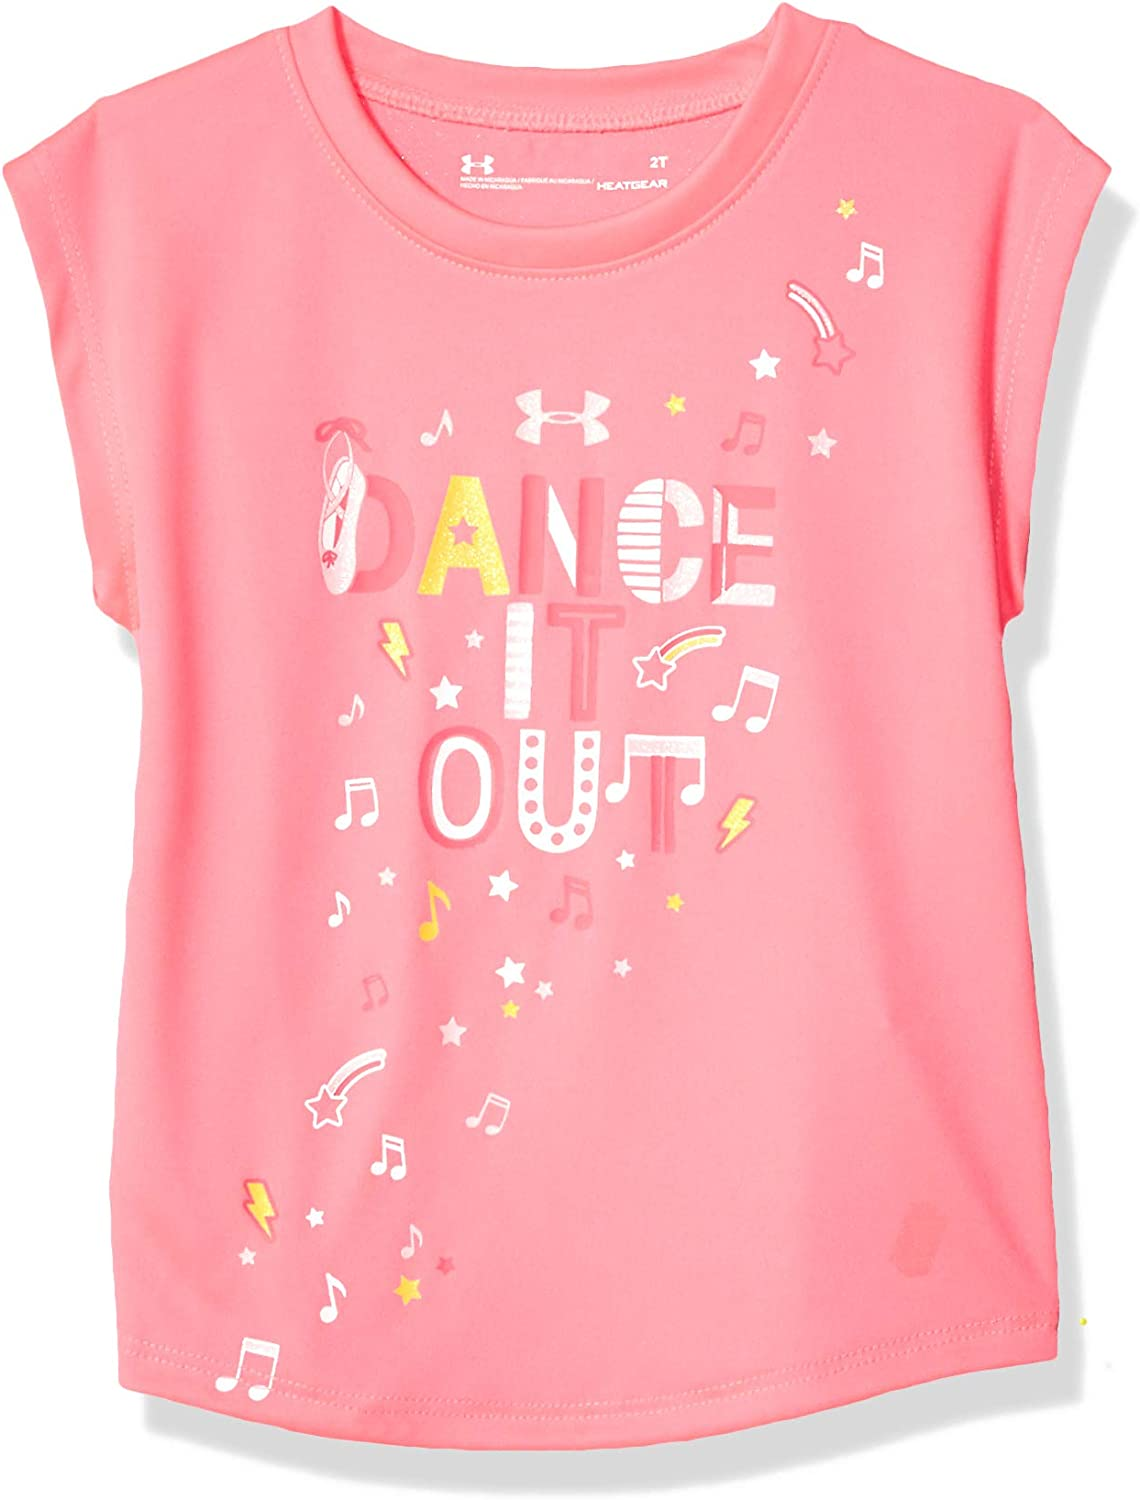 Under Armour Girls This is My Game Short Sleeve T-Shirt